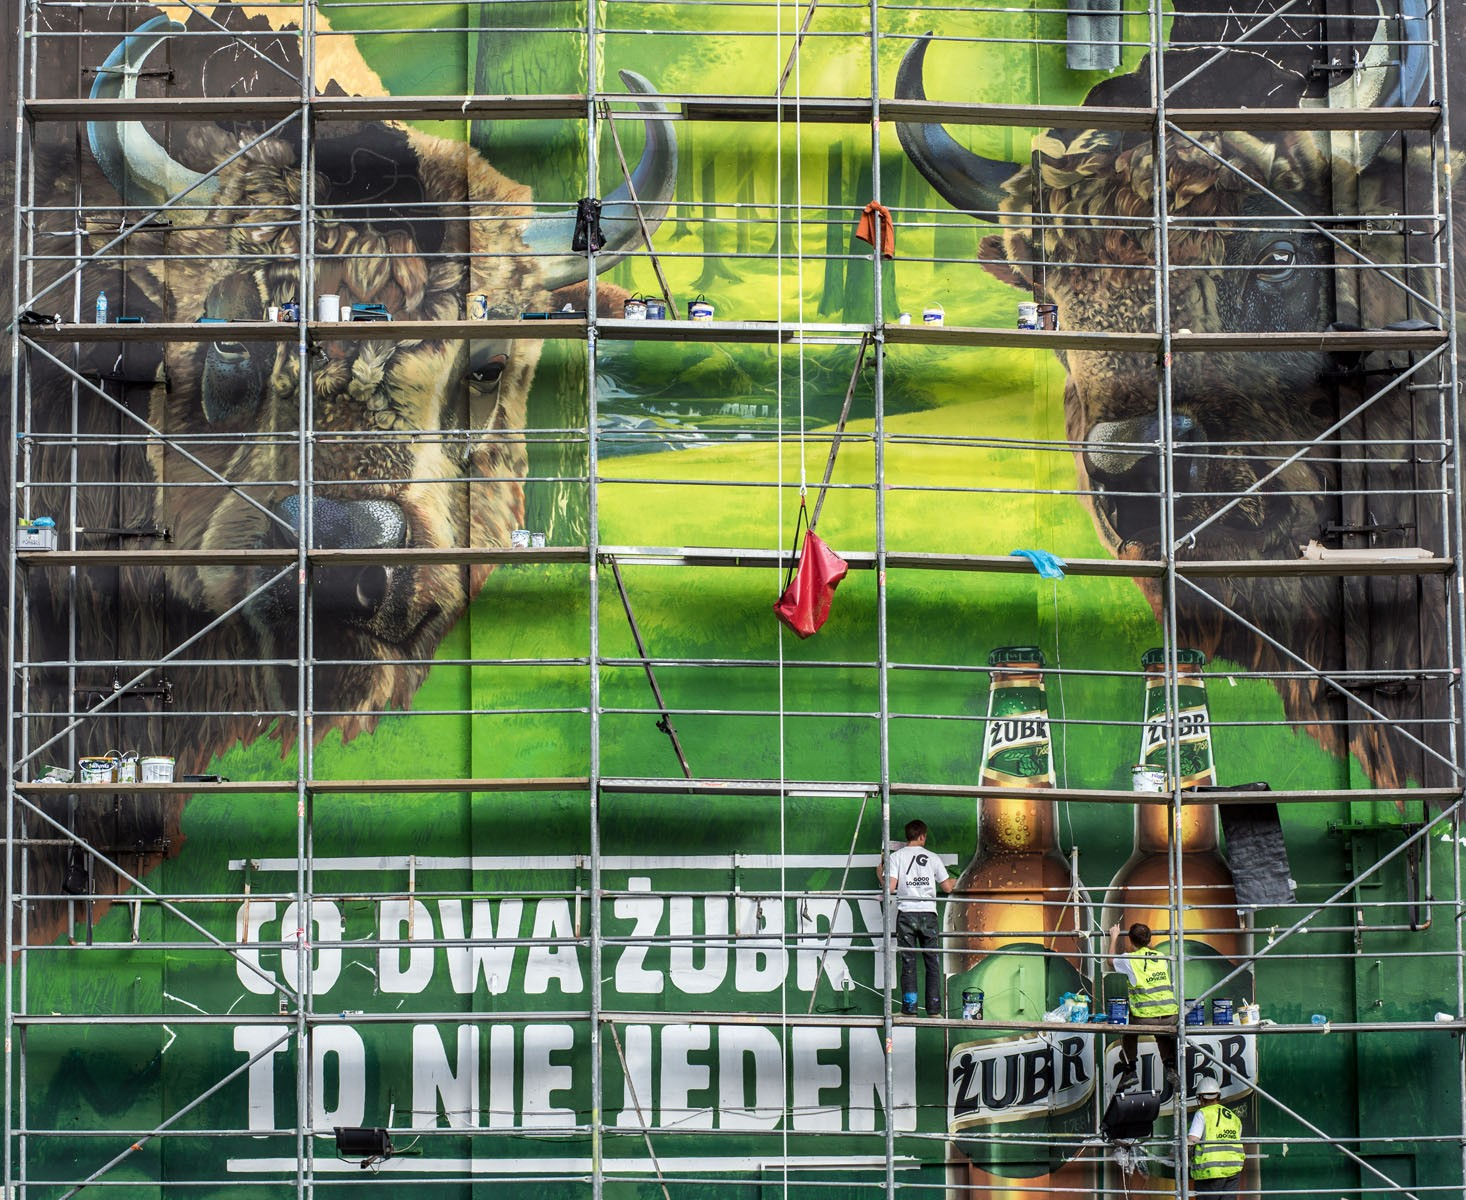 Advertising mural Every two Zubr are better than one in Warsaw Bracka street Department Store Bracia Jablkowscy | Every two Zubr are better than one | Portfolio